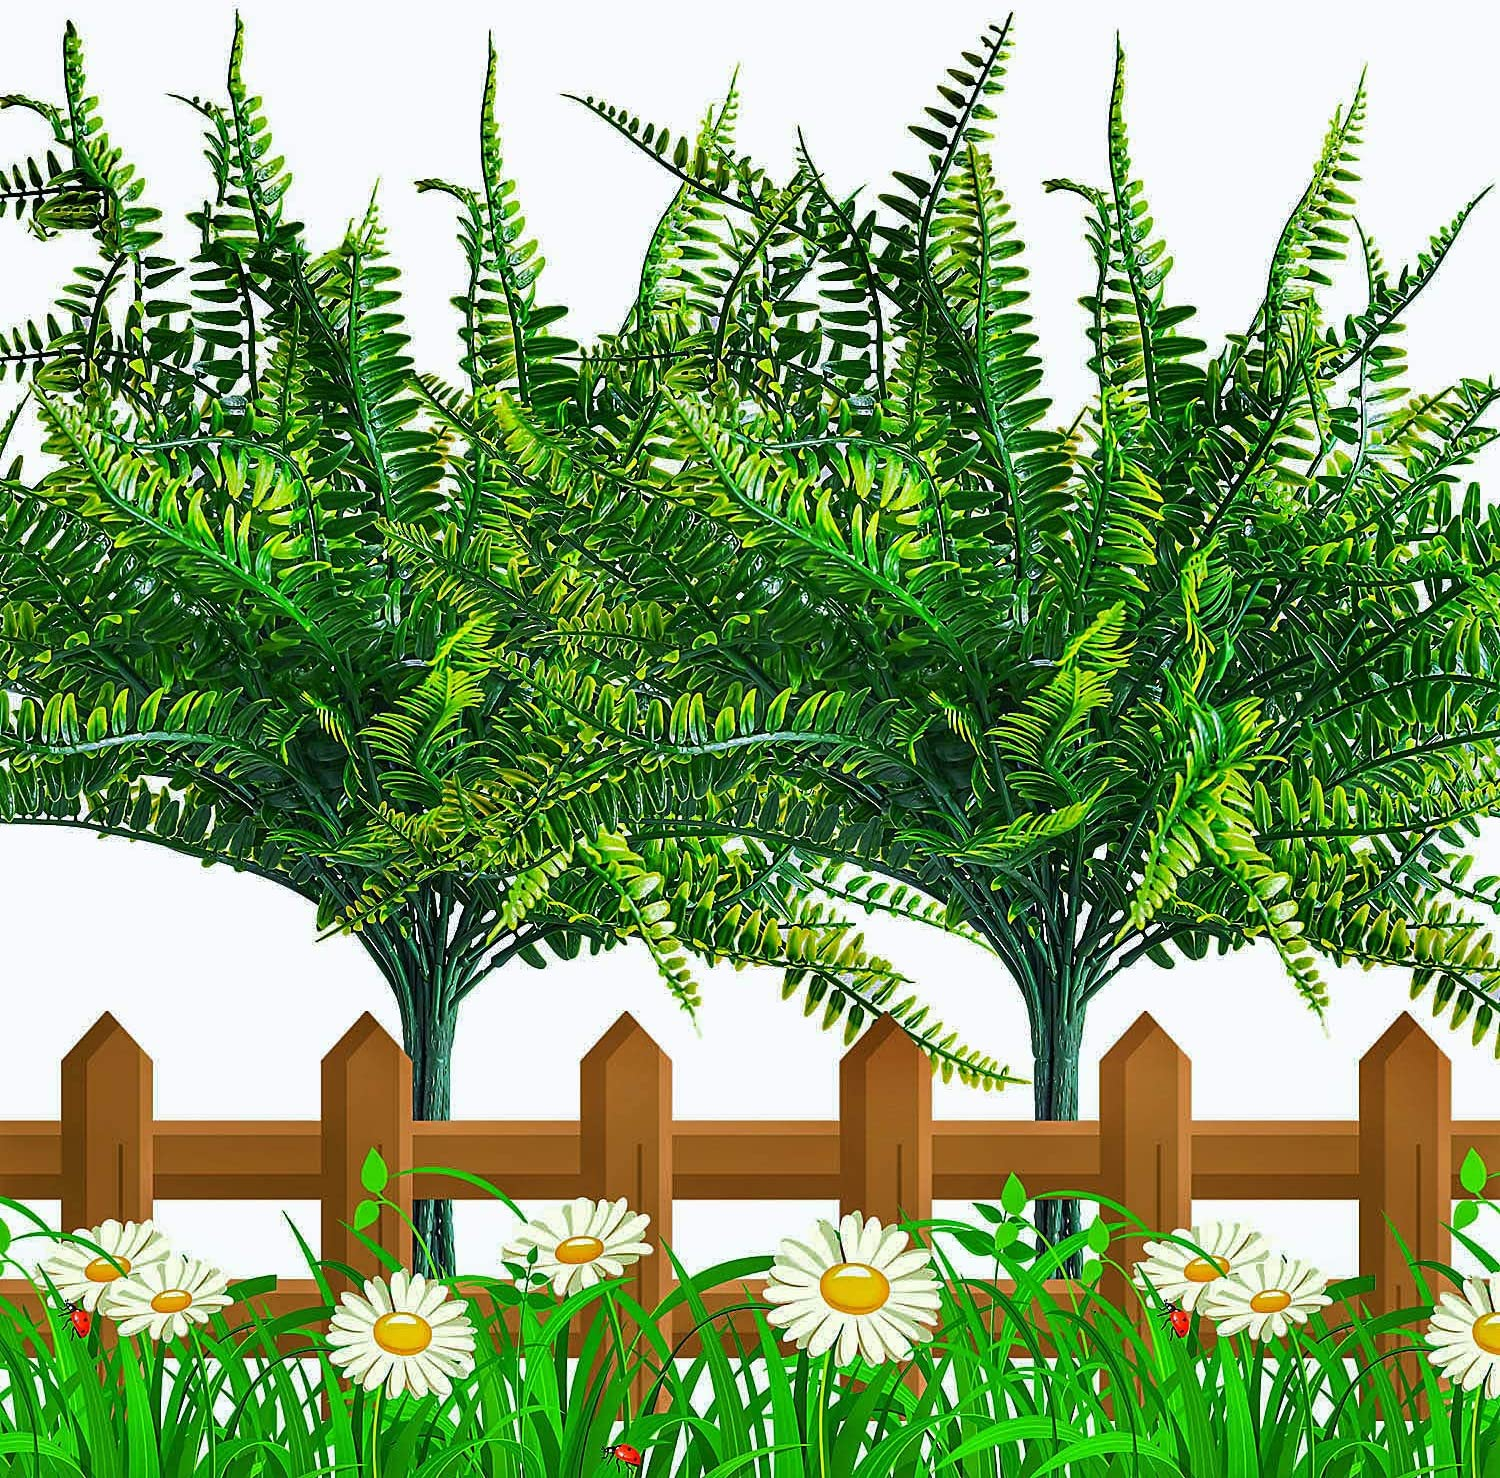 10 PCS Artificial Fern Plants, Faux Boston Fern Bush, Fake Indoor Outdoor UV Resistant Greenery Shrubs, Plastic Grass Leaves Flowers Plant for Hanging Planter Windowsill Office Garden Christmas Decor